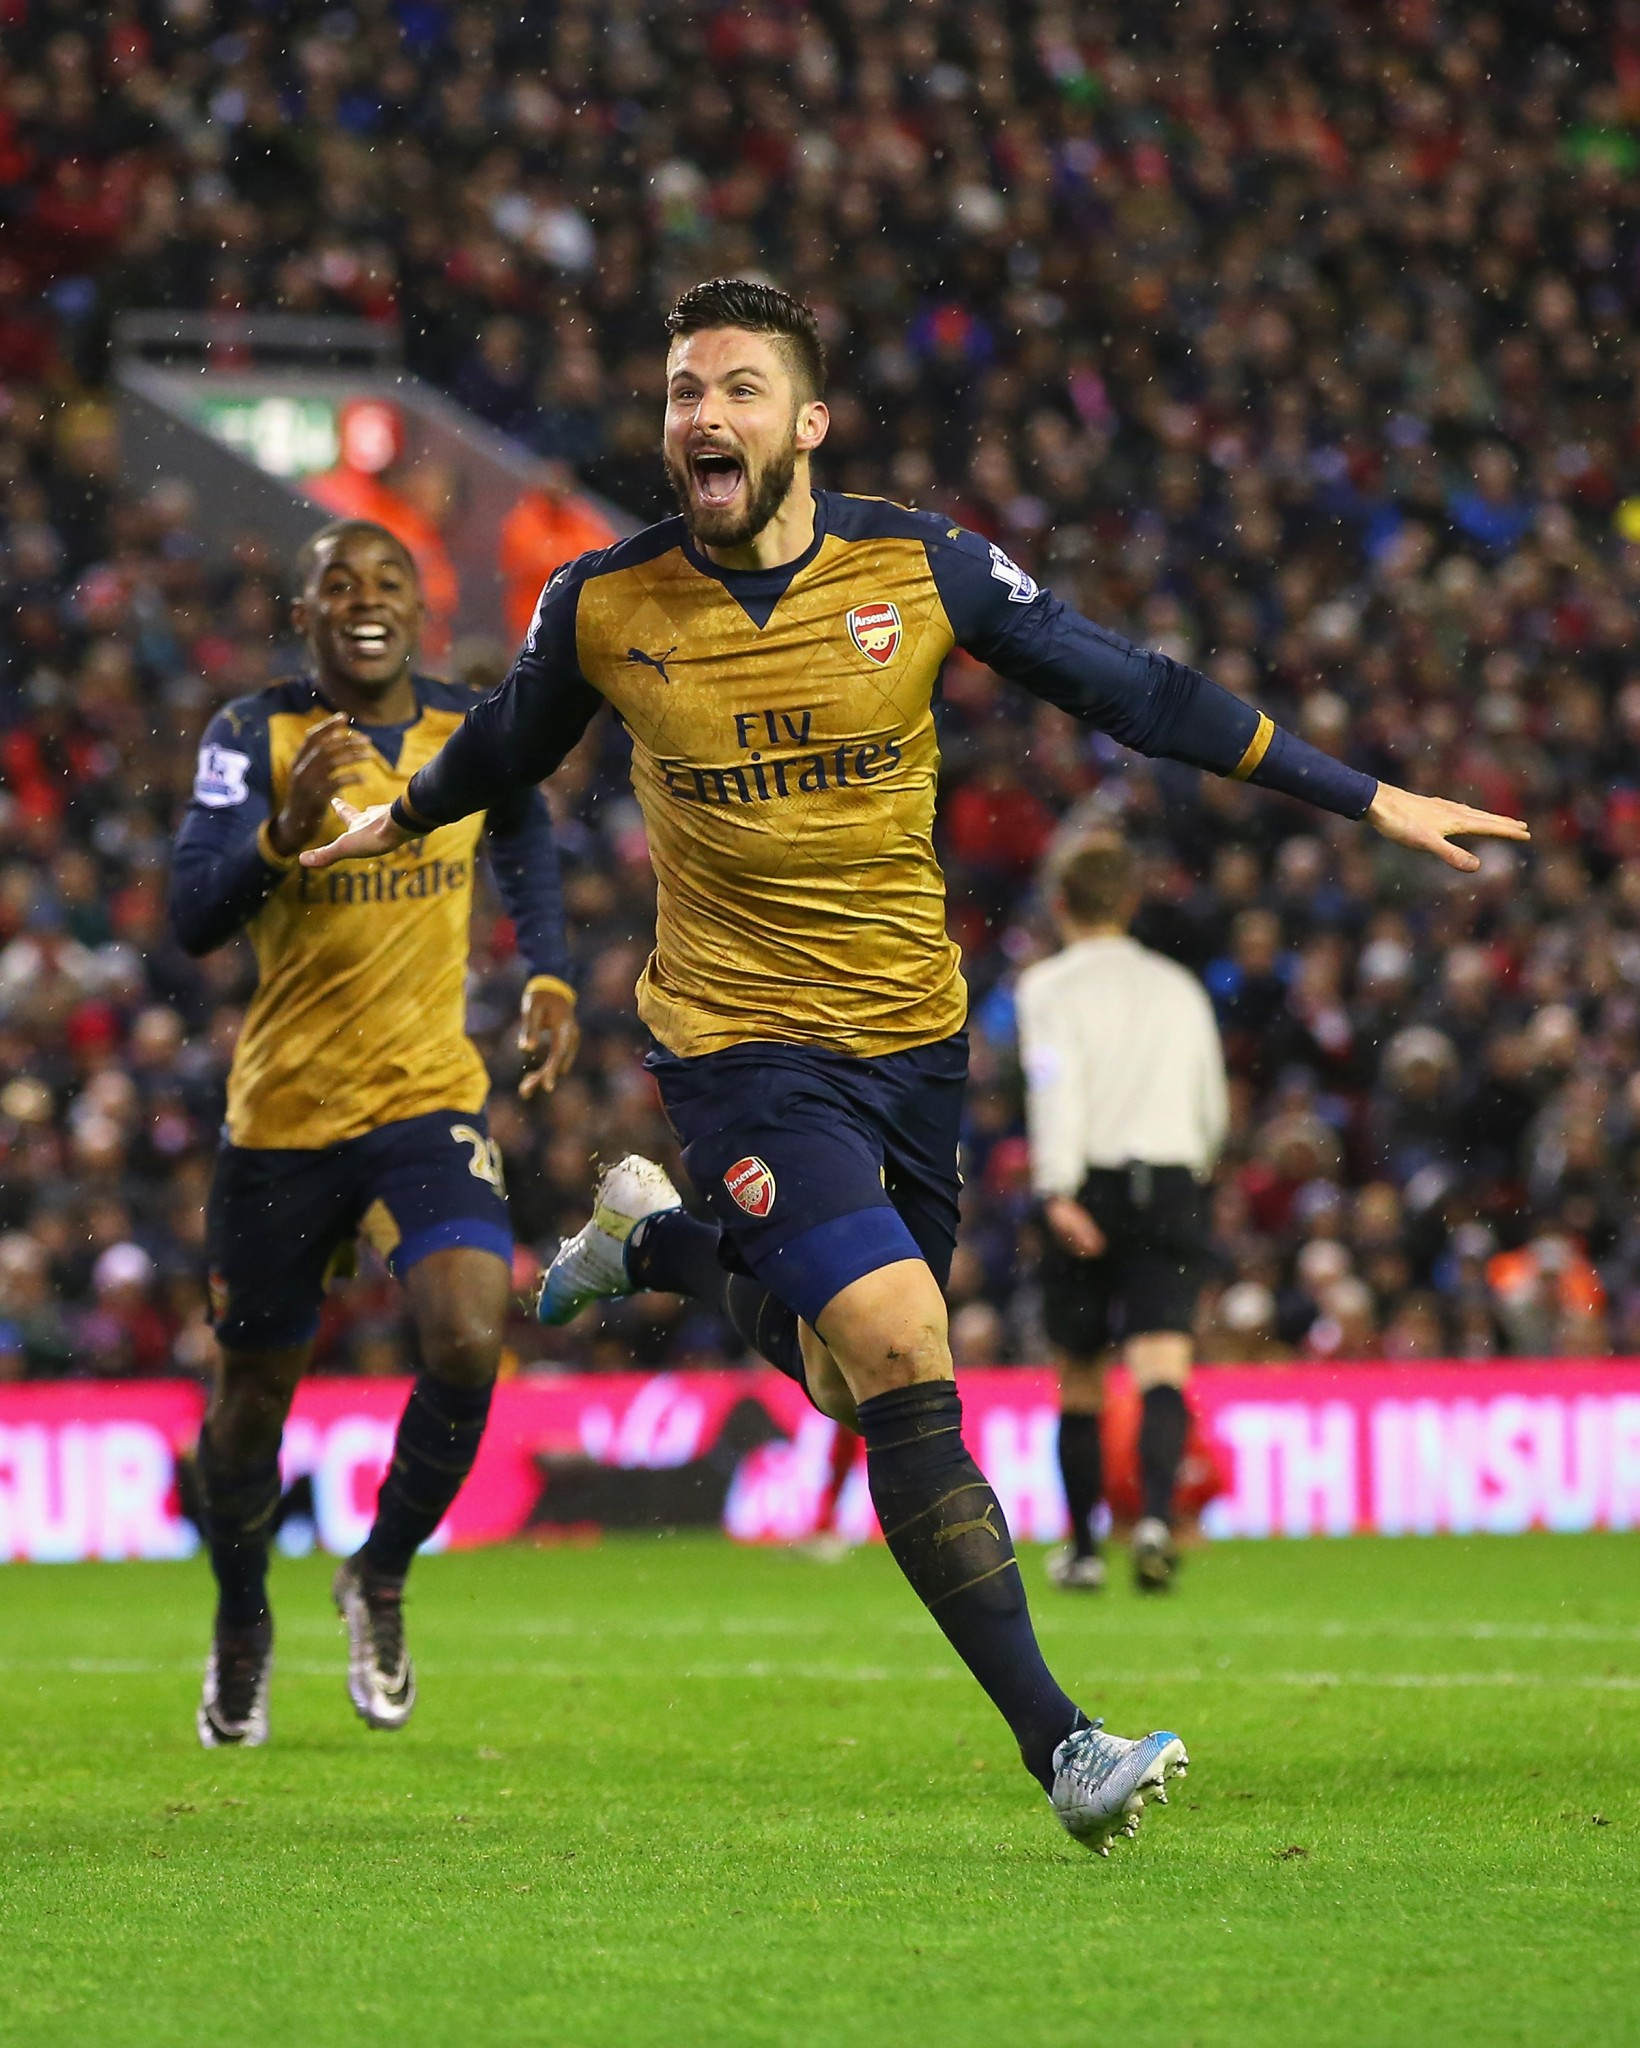 Olivier Giroud in action for Arsenal in the Premier League